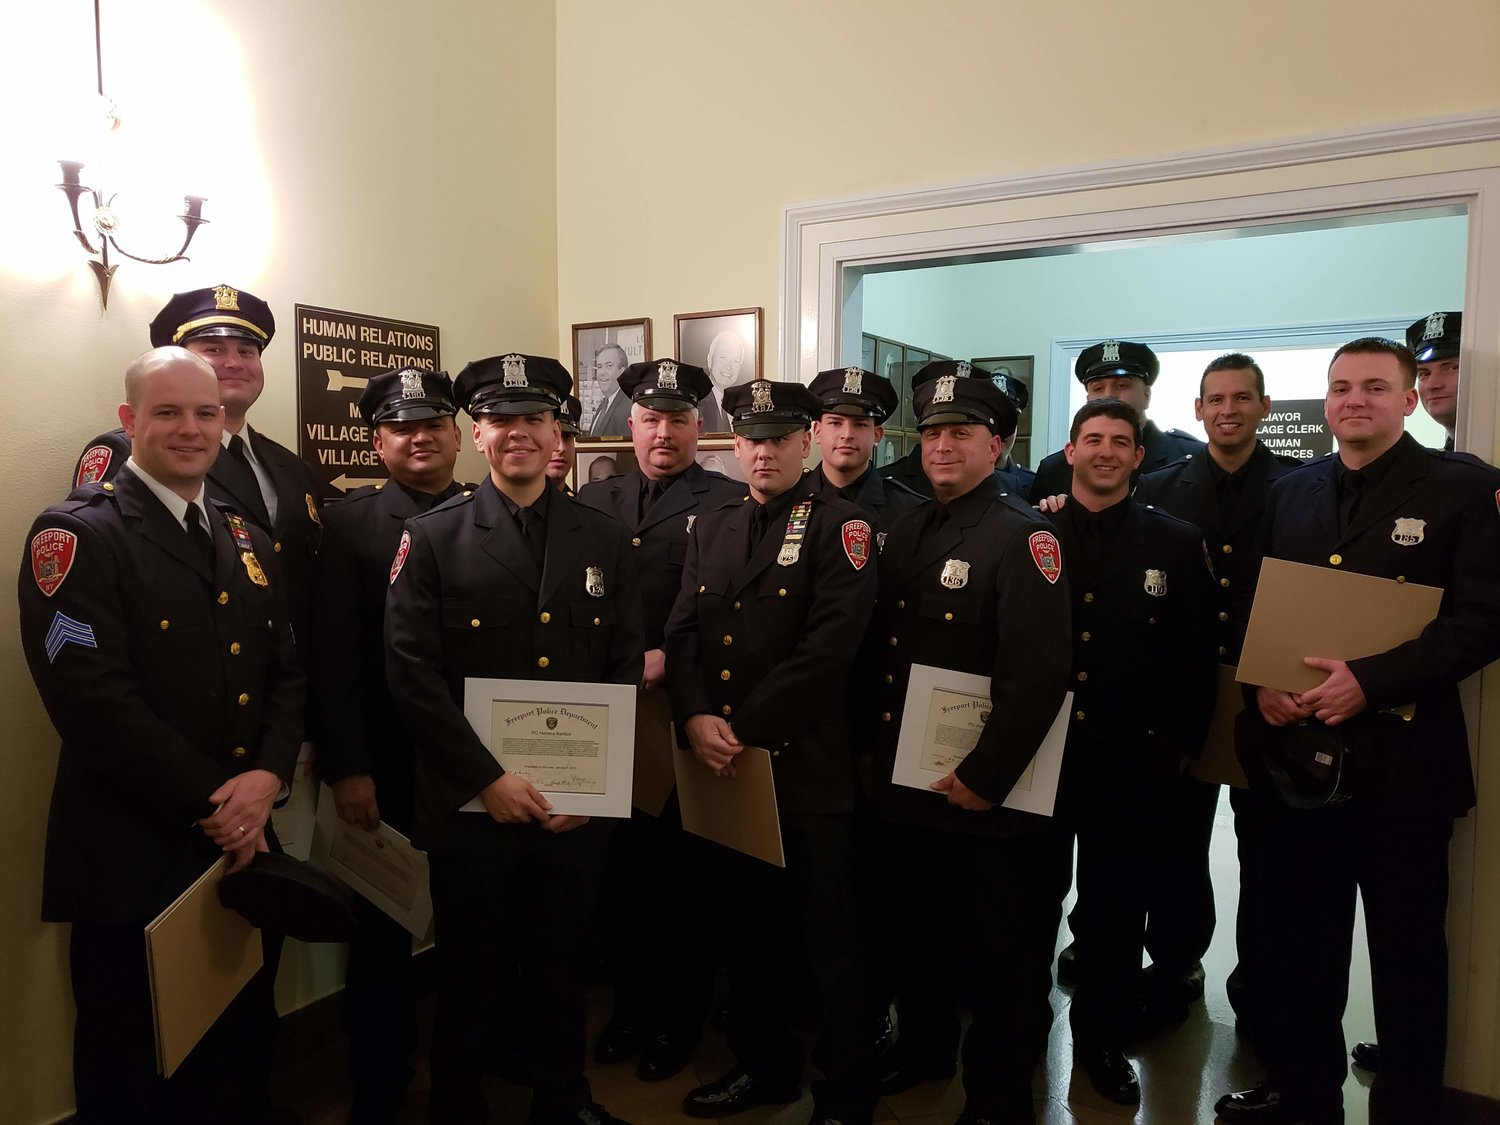 Freeport Police Department officers along with Nassau County Police Department officers were presented with Police Awards during the Village of Freeport Board of Trustees meeting on Jan. 7.